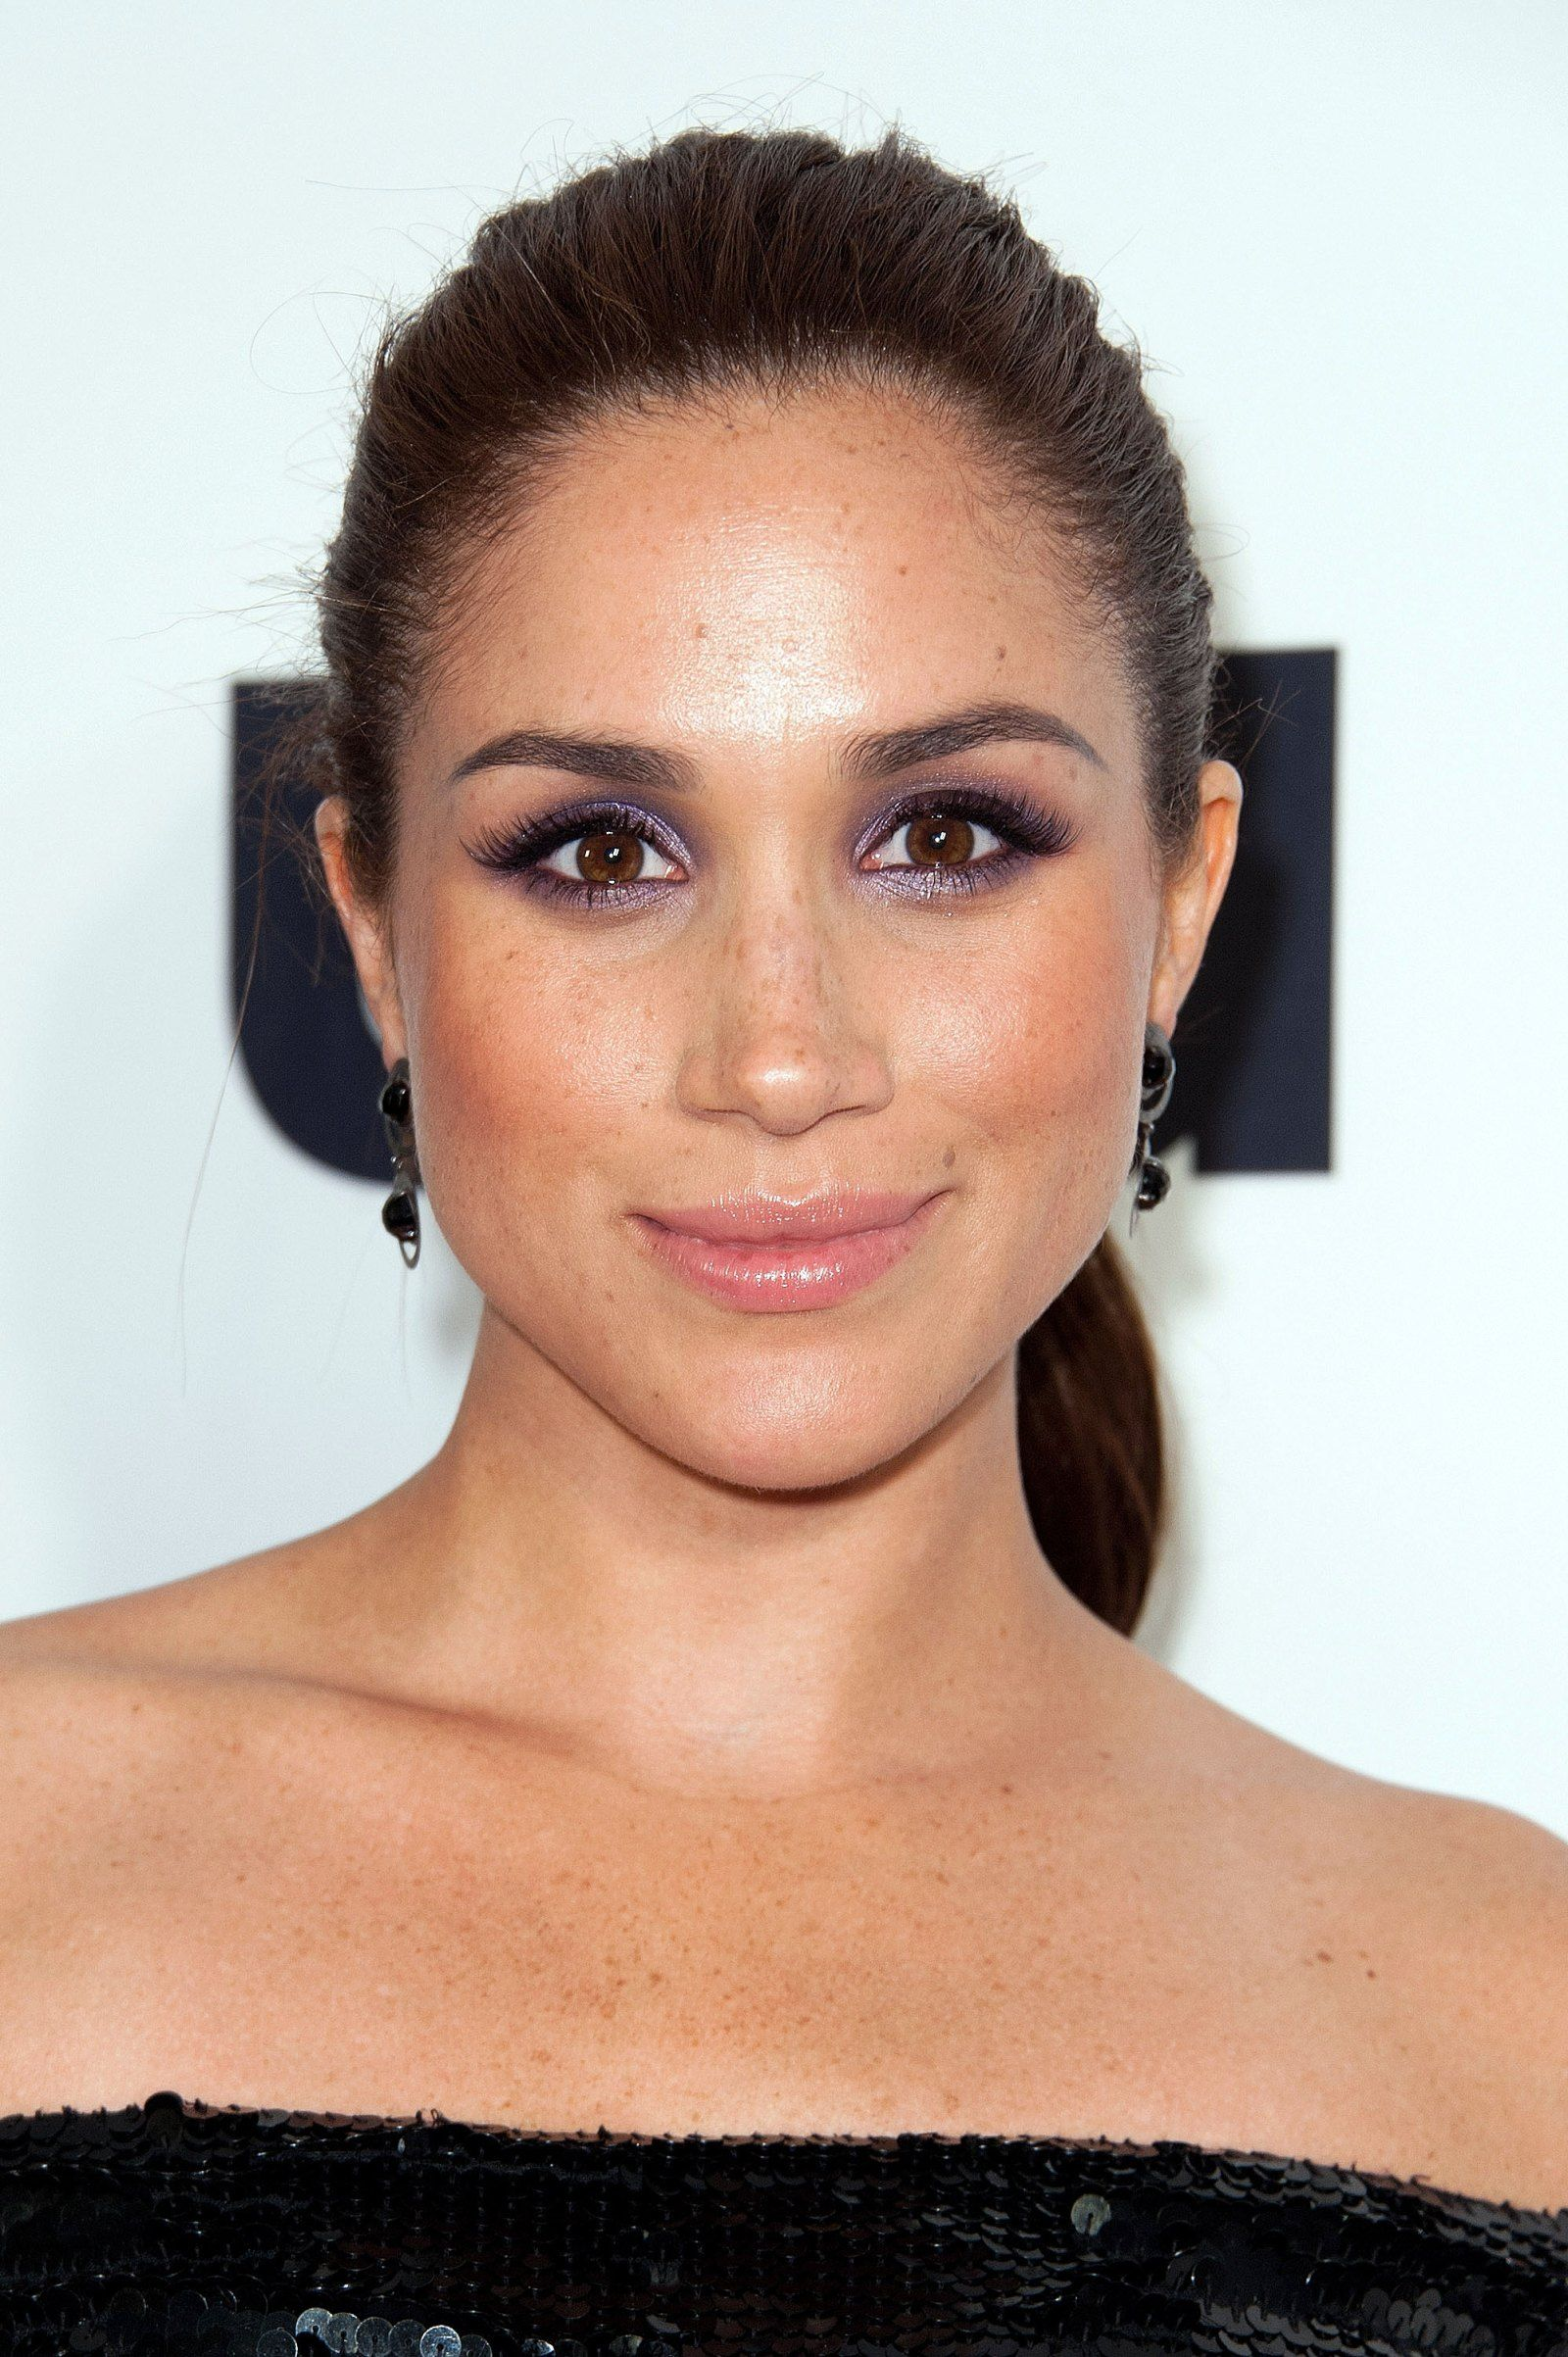 5 Pics That Show Why Meghan Markle Loves Her Freckles